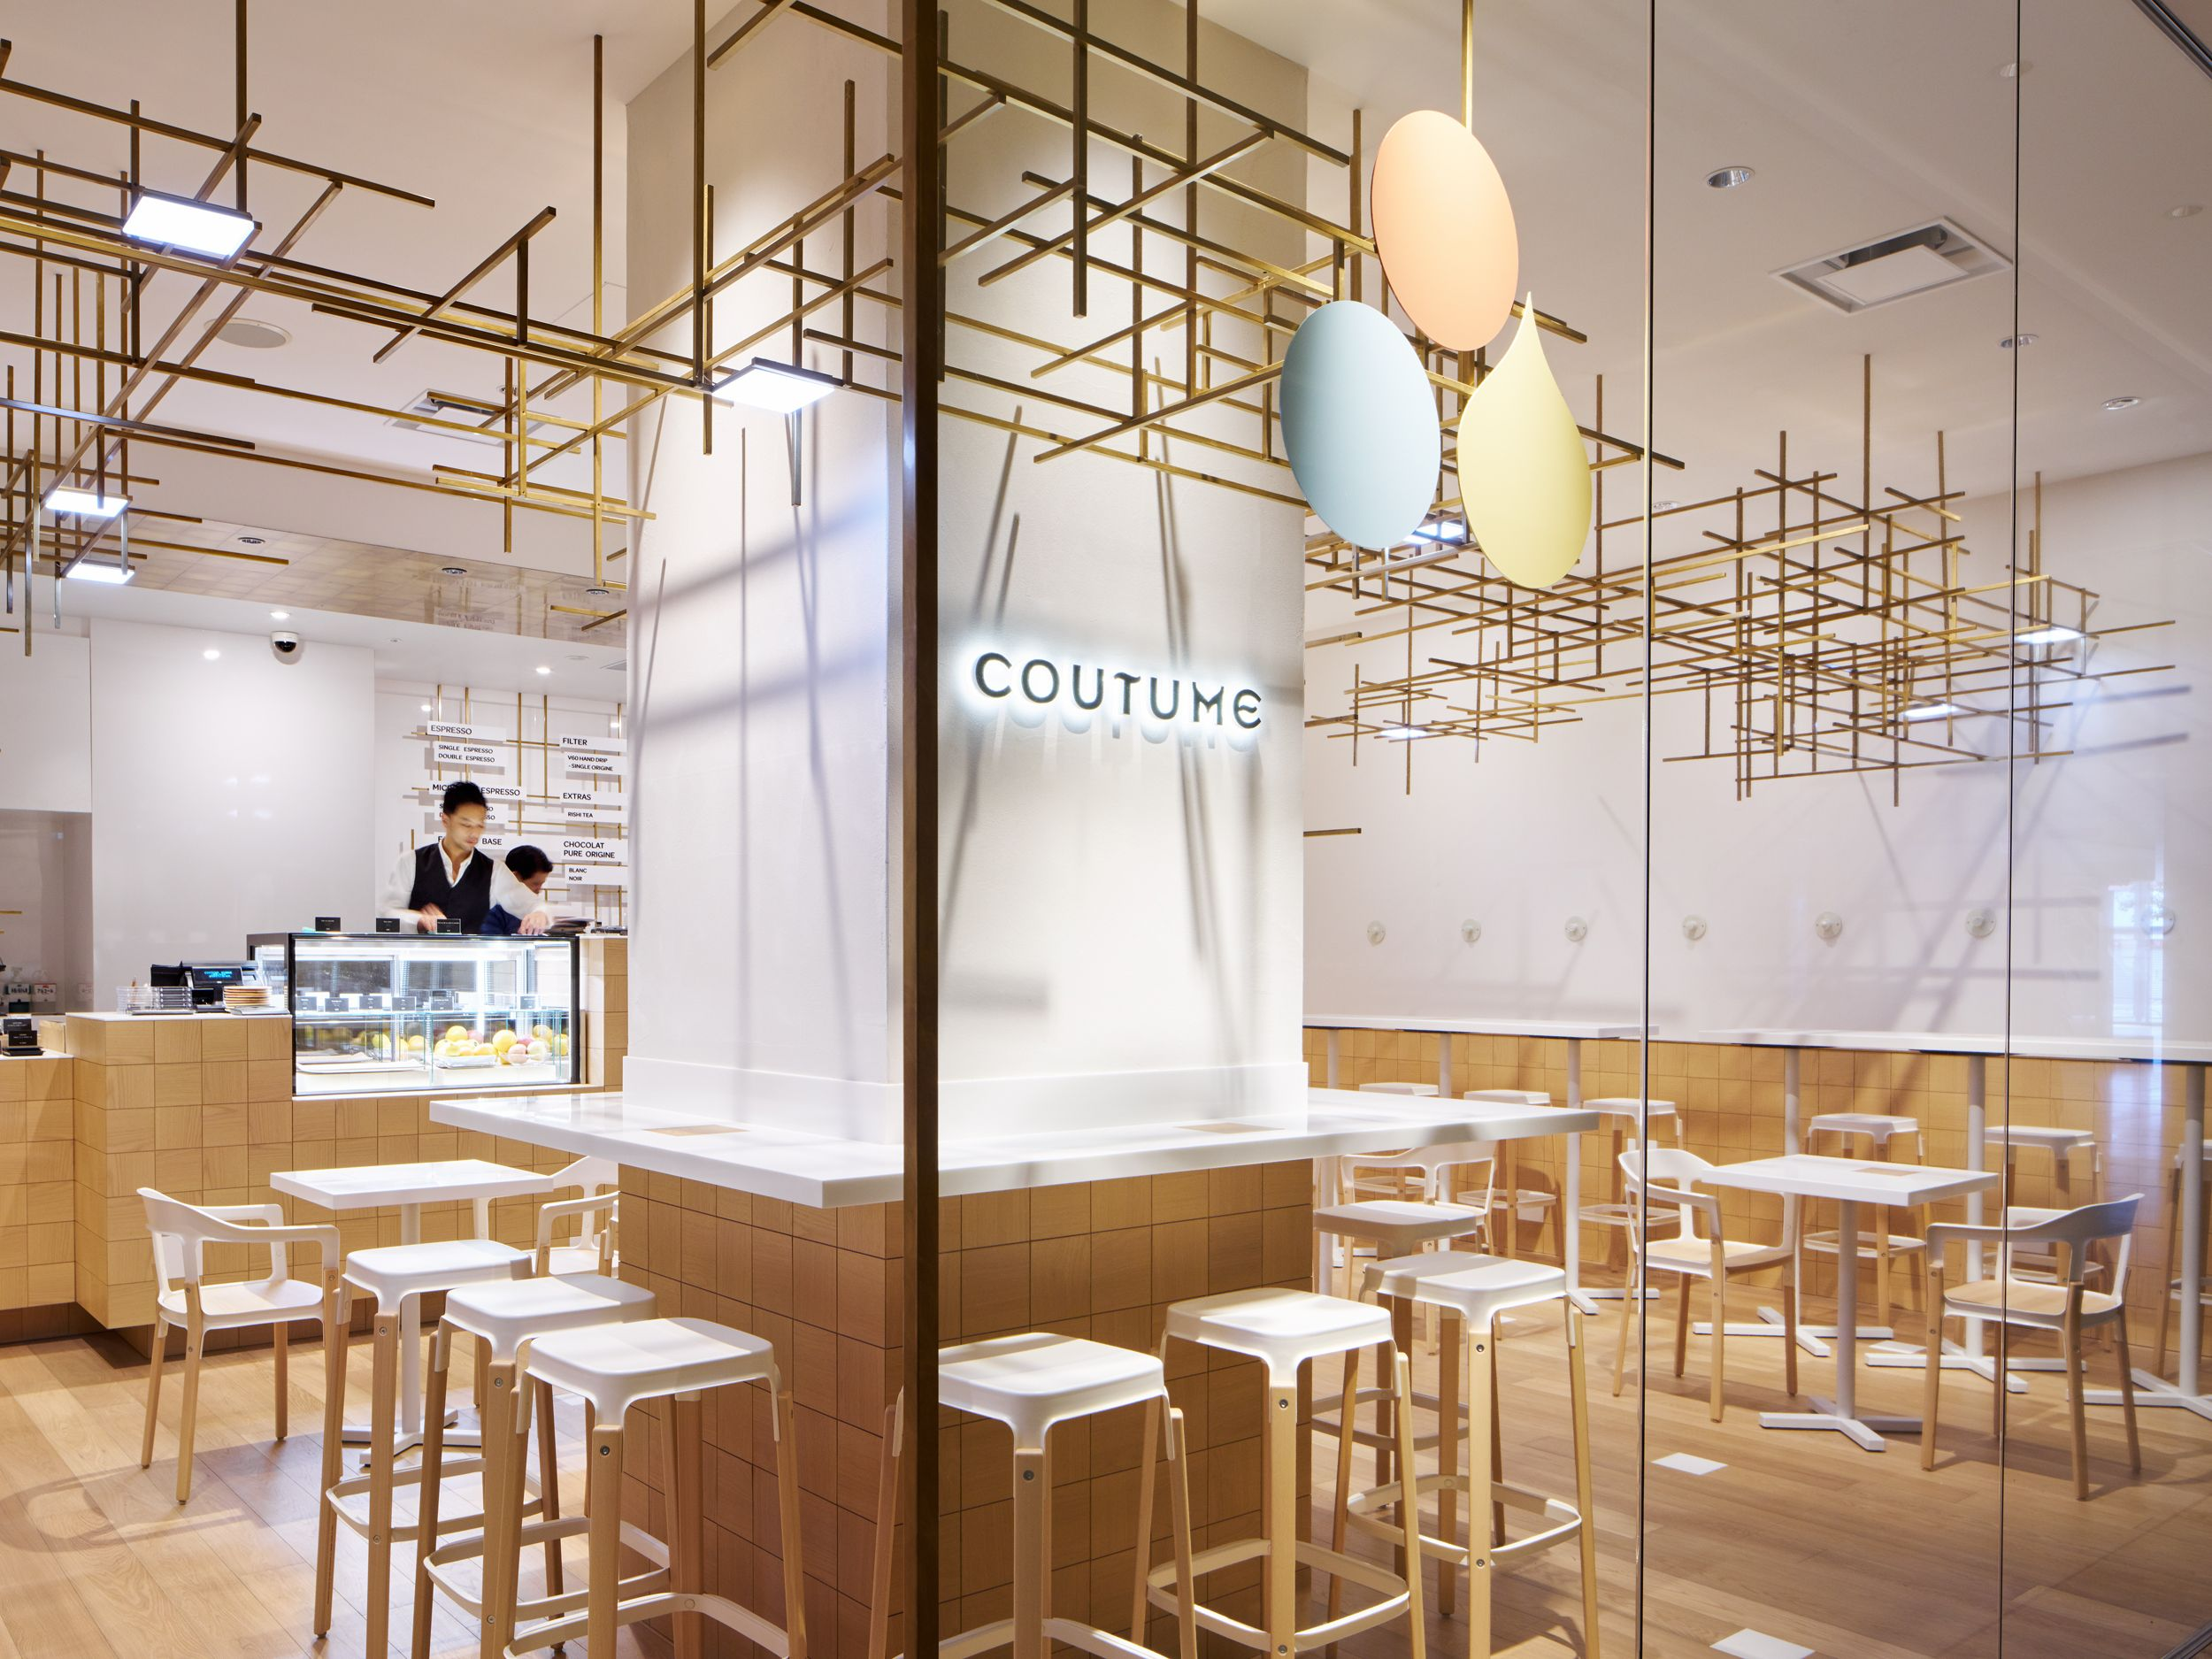 Coutume futakotamagawa cut architectures · cafe shopcontemporary architecturedesign